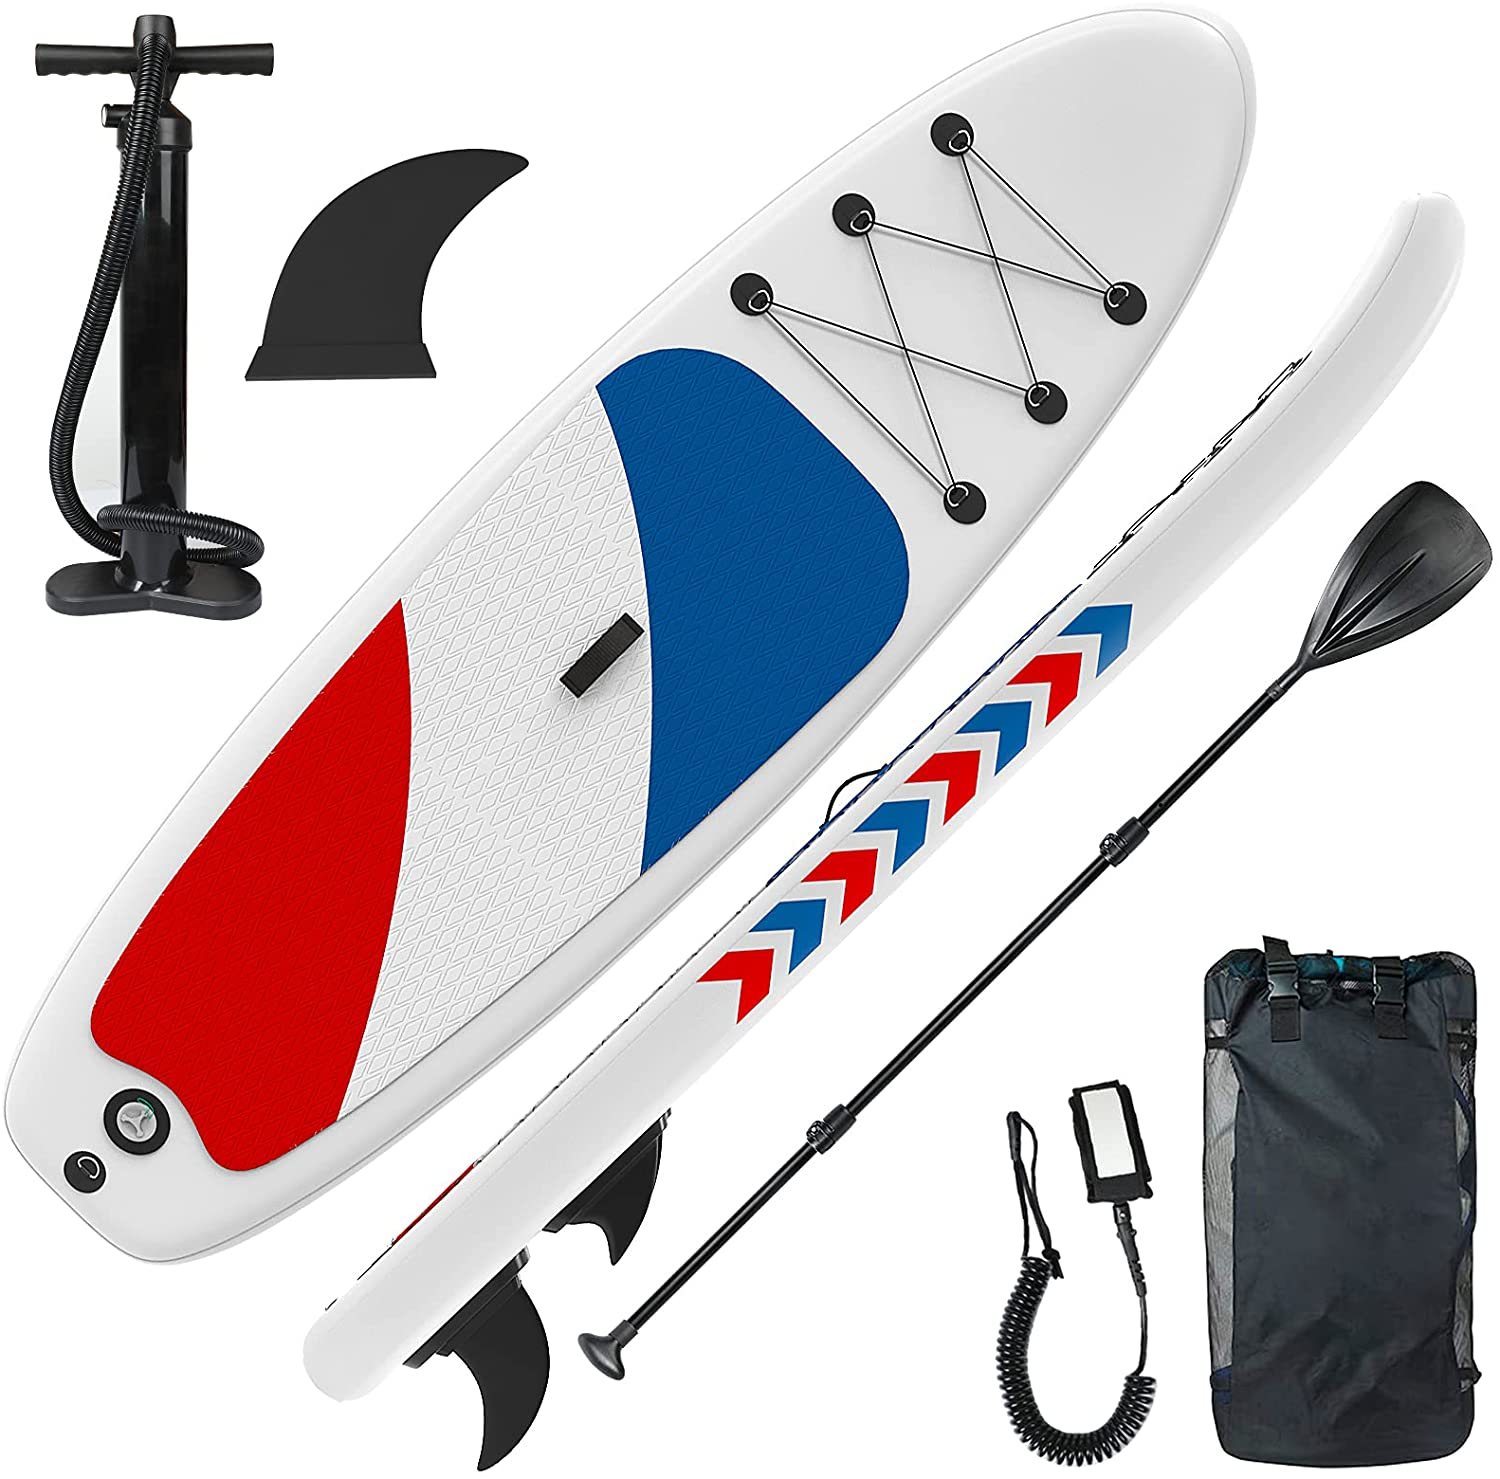 Gruper Inflatable Stand Up Paddle Boards Layers Air 3 Import Gifts with Anti